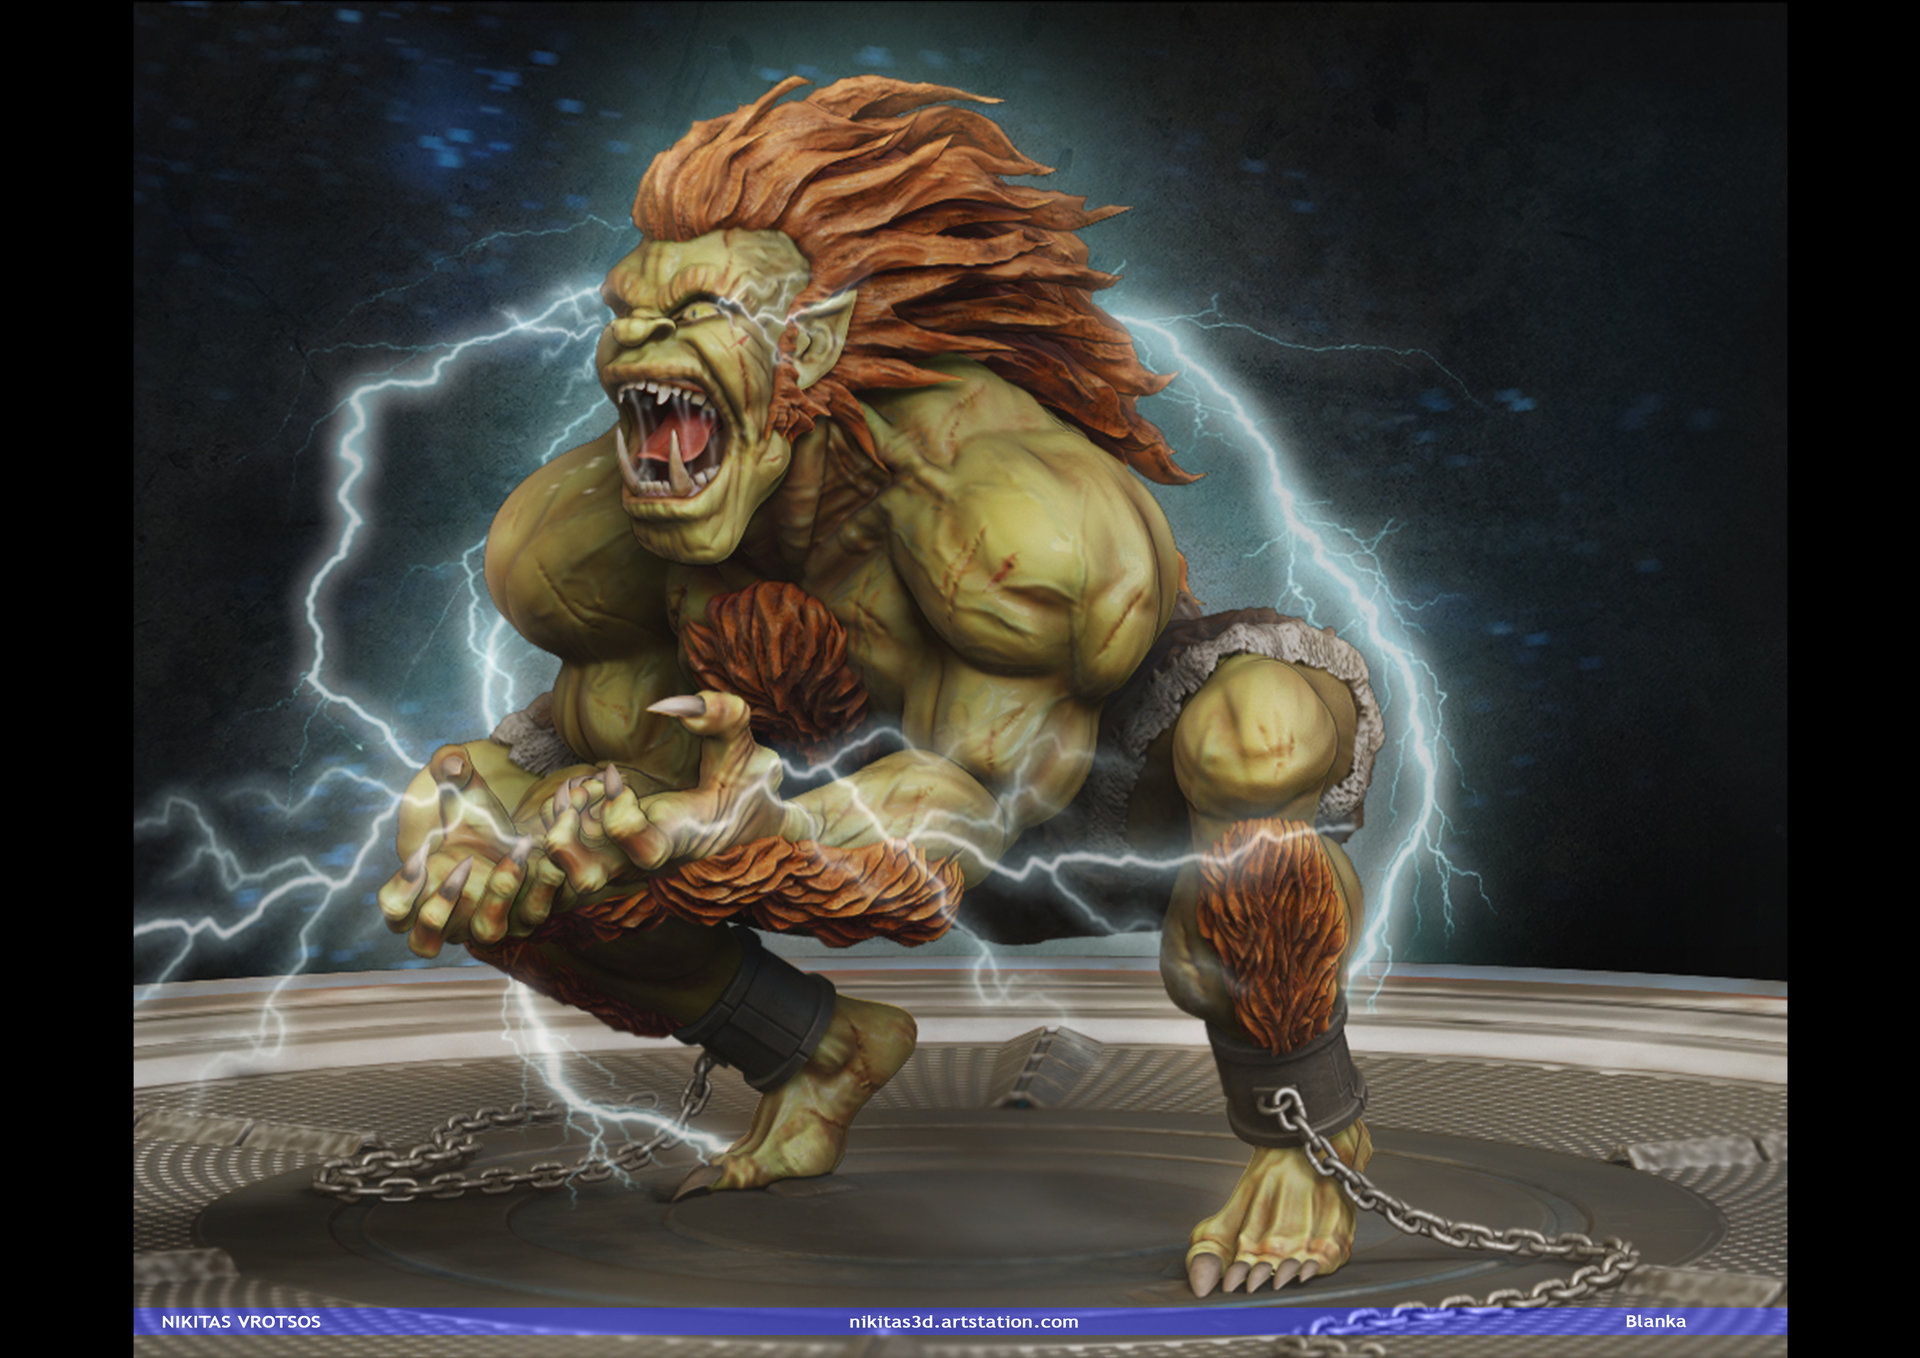 ArtStation - Blanka (Street Fighter Fan Art), Nikitas Vrotsos